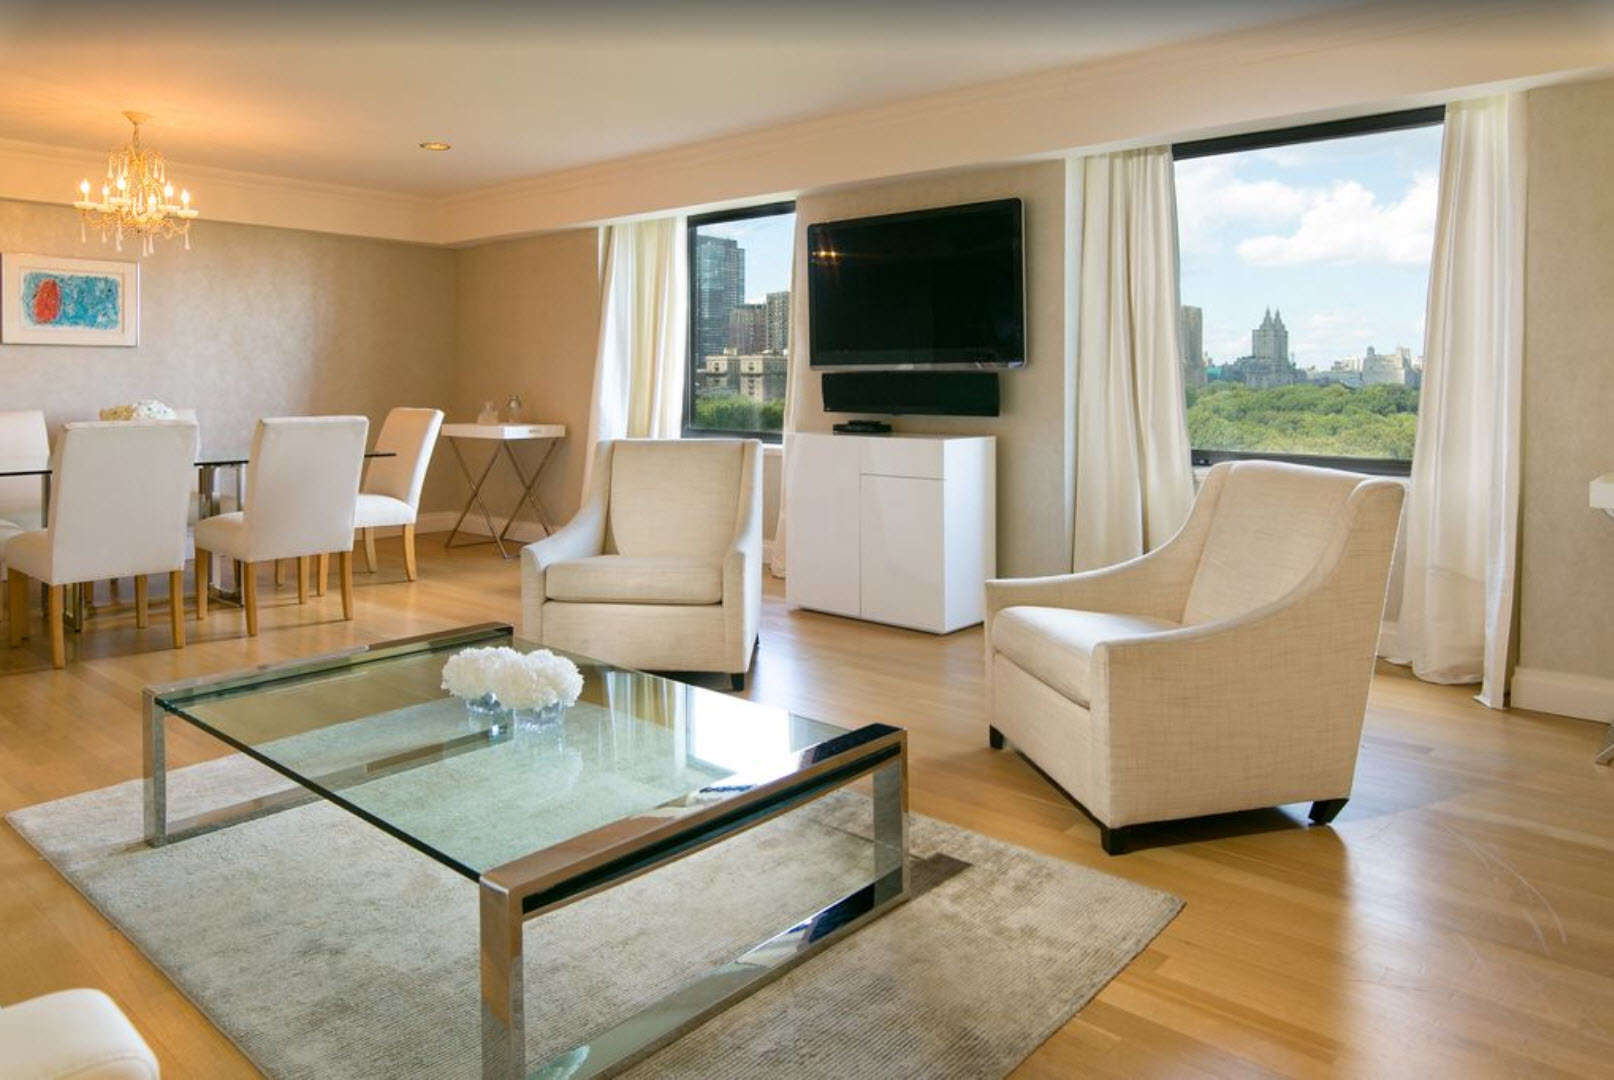 Luxury vacation rentals usa - New york - New york city - Central park - 2 Bedroom Luxury Apartment | Central Park South - Image 1/13